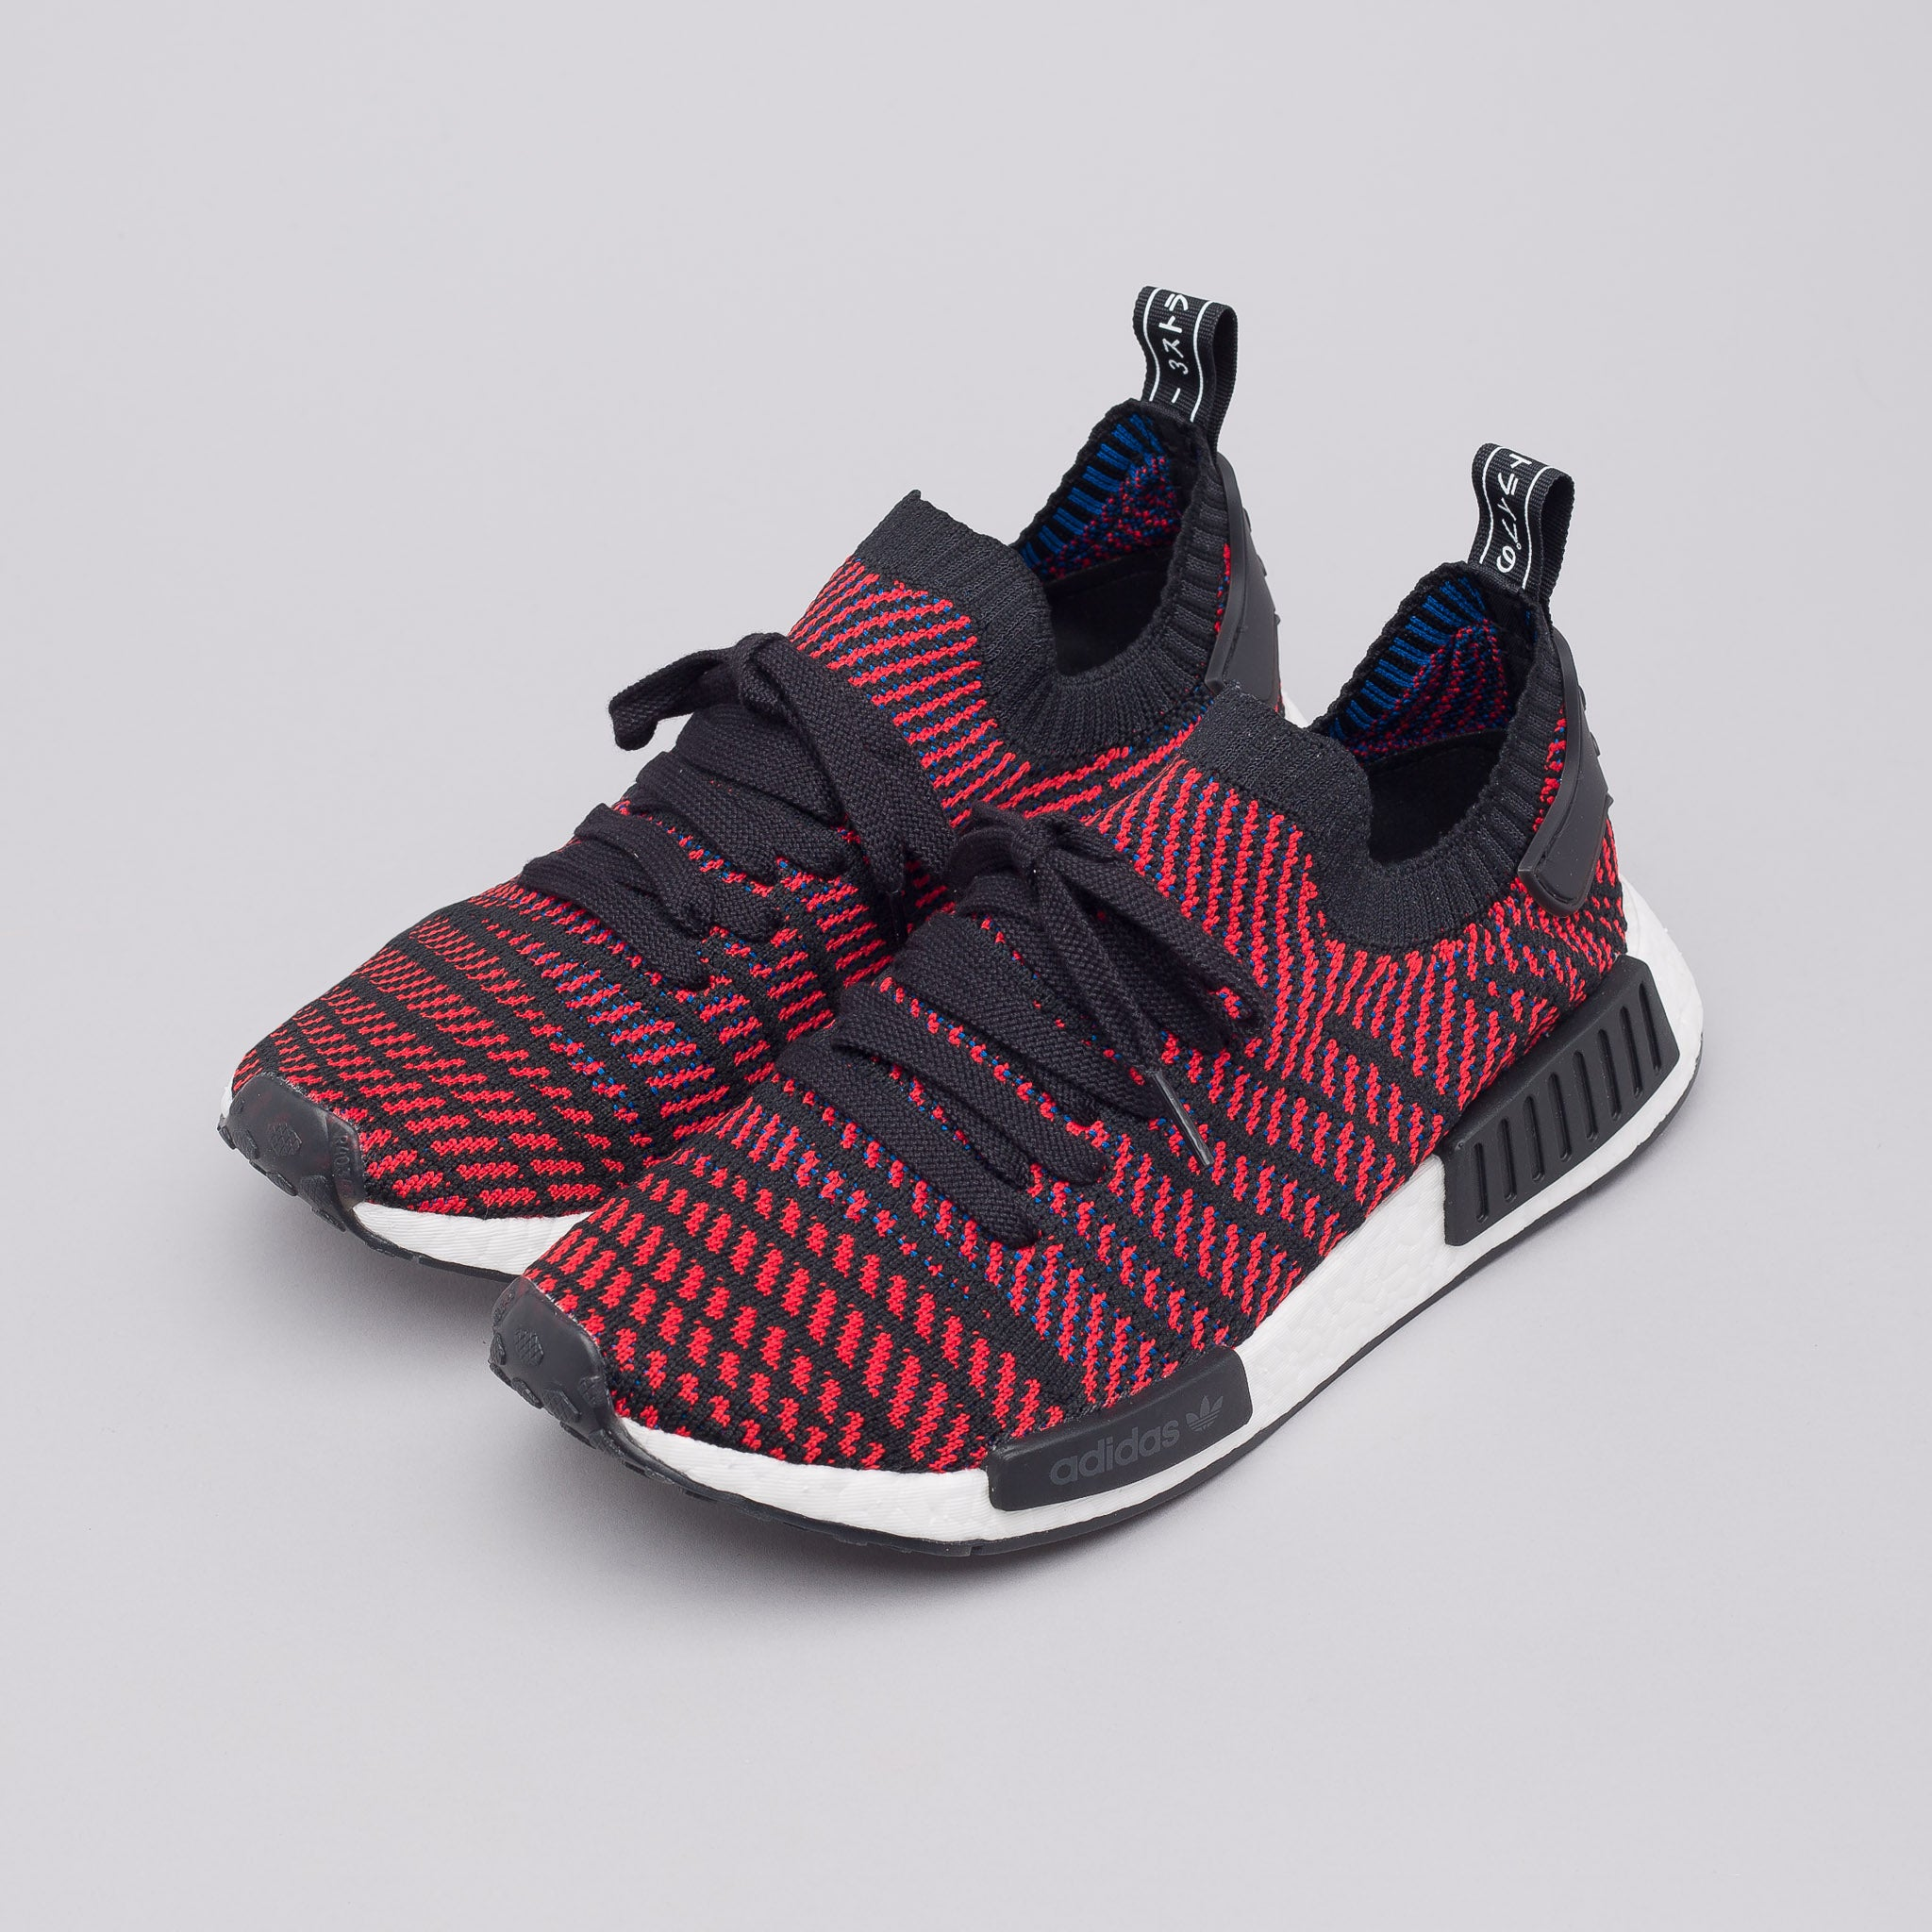 outlet store b4722 62aad Cheap Adidas NMD R1 Primeknit Shoes for Sale 2018